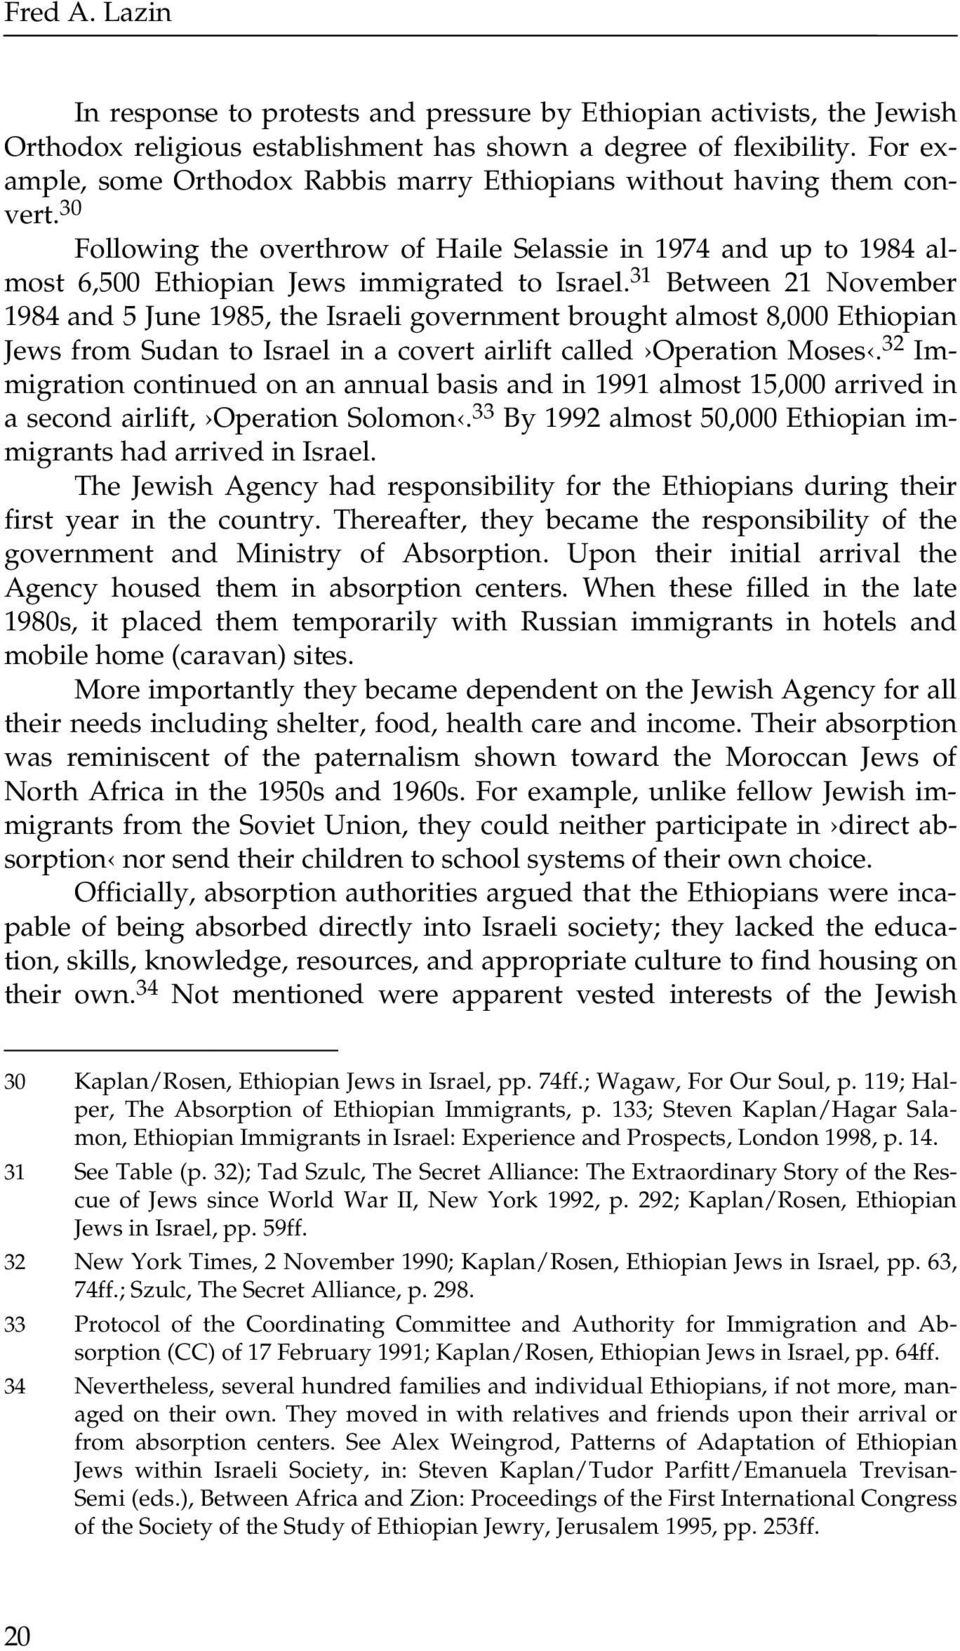 31 Between 21 November 1984 and 5 June 1985, the Israeli government brought almost 8,000 Ethiopian Jews from Sudan to Israel in a covert airlift called Operation Moses.